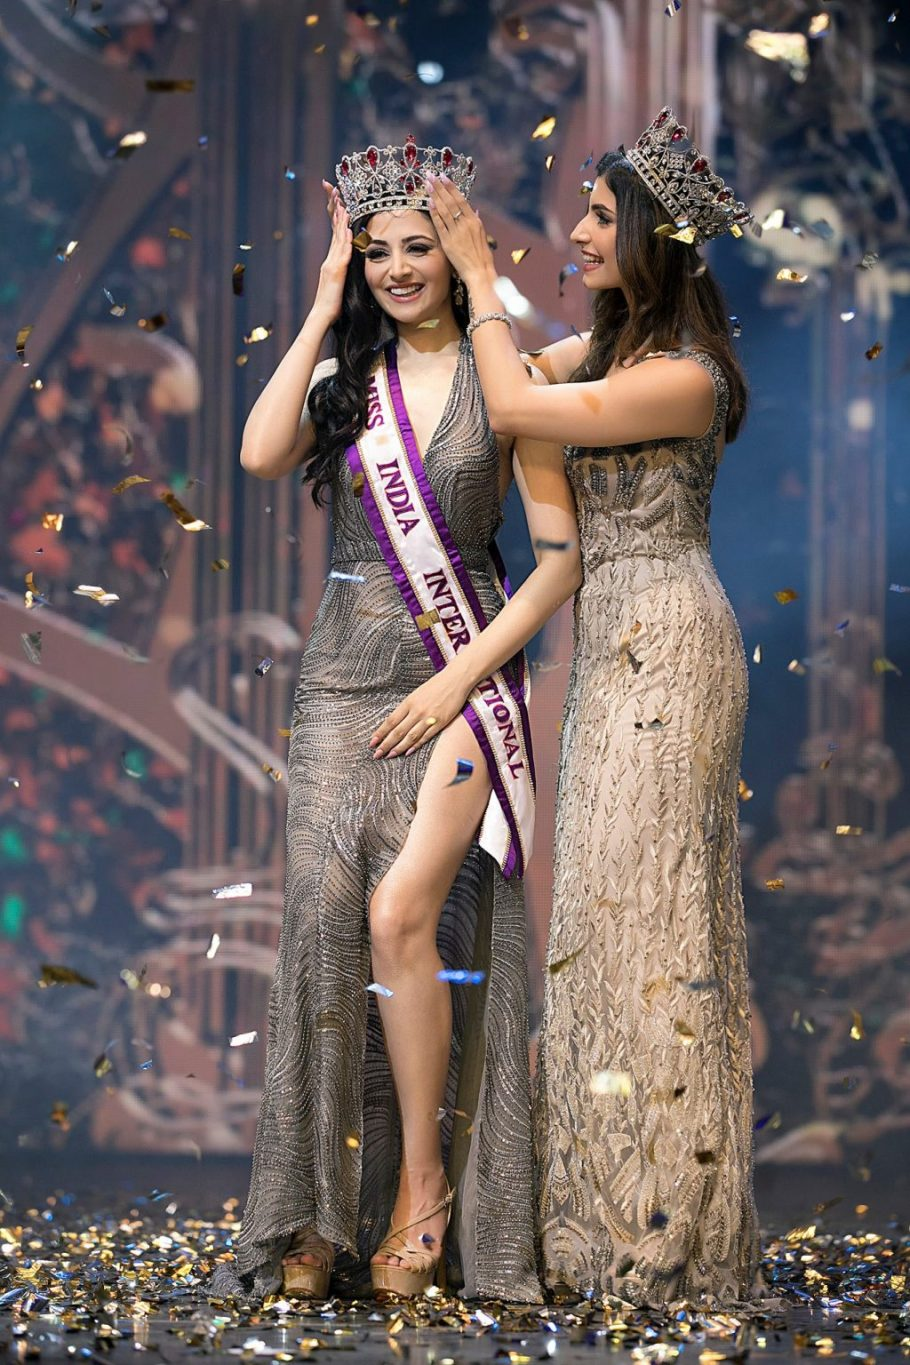 Meet the winners of Glamanand Supermodel India 2021